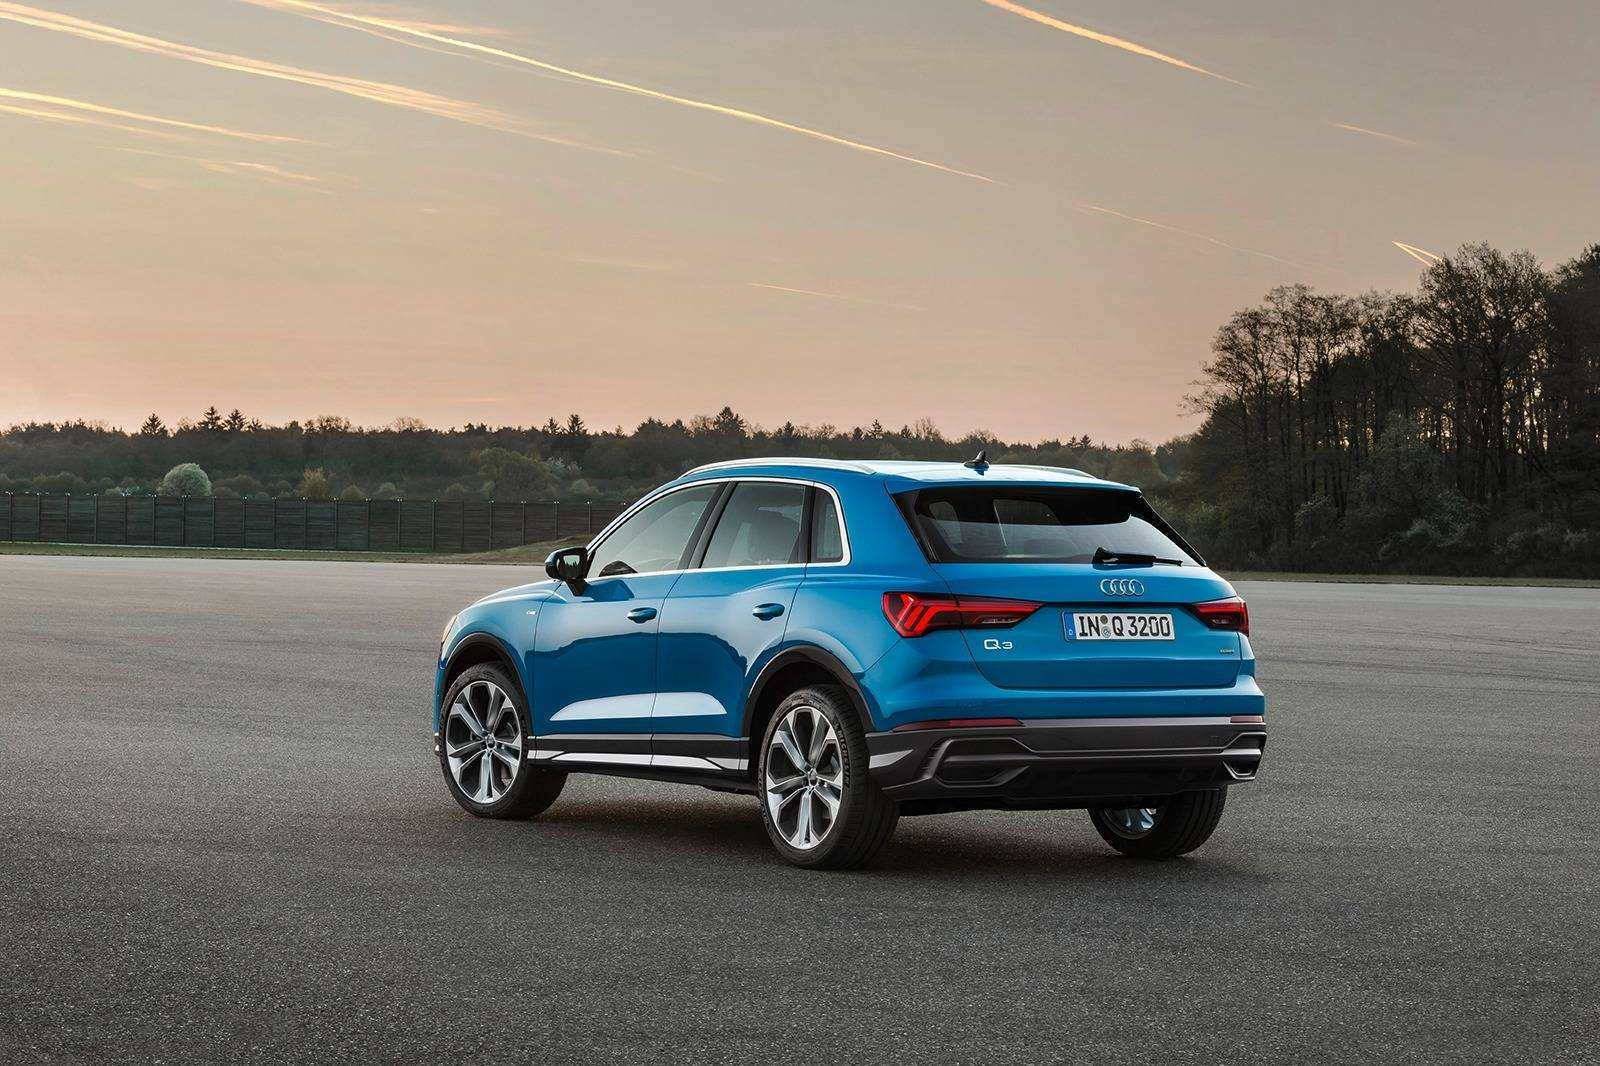 11 Concept of 2019 Audi Q3 Vs Volvo Xc40 Release Date Research New for 2019 Audi Q3 Vs Volvo Xc40 Release Date